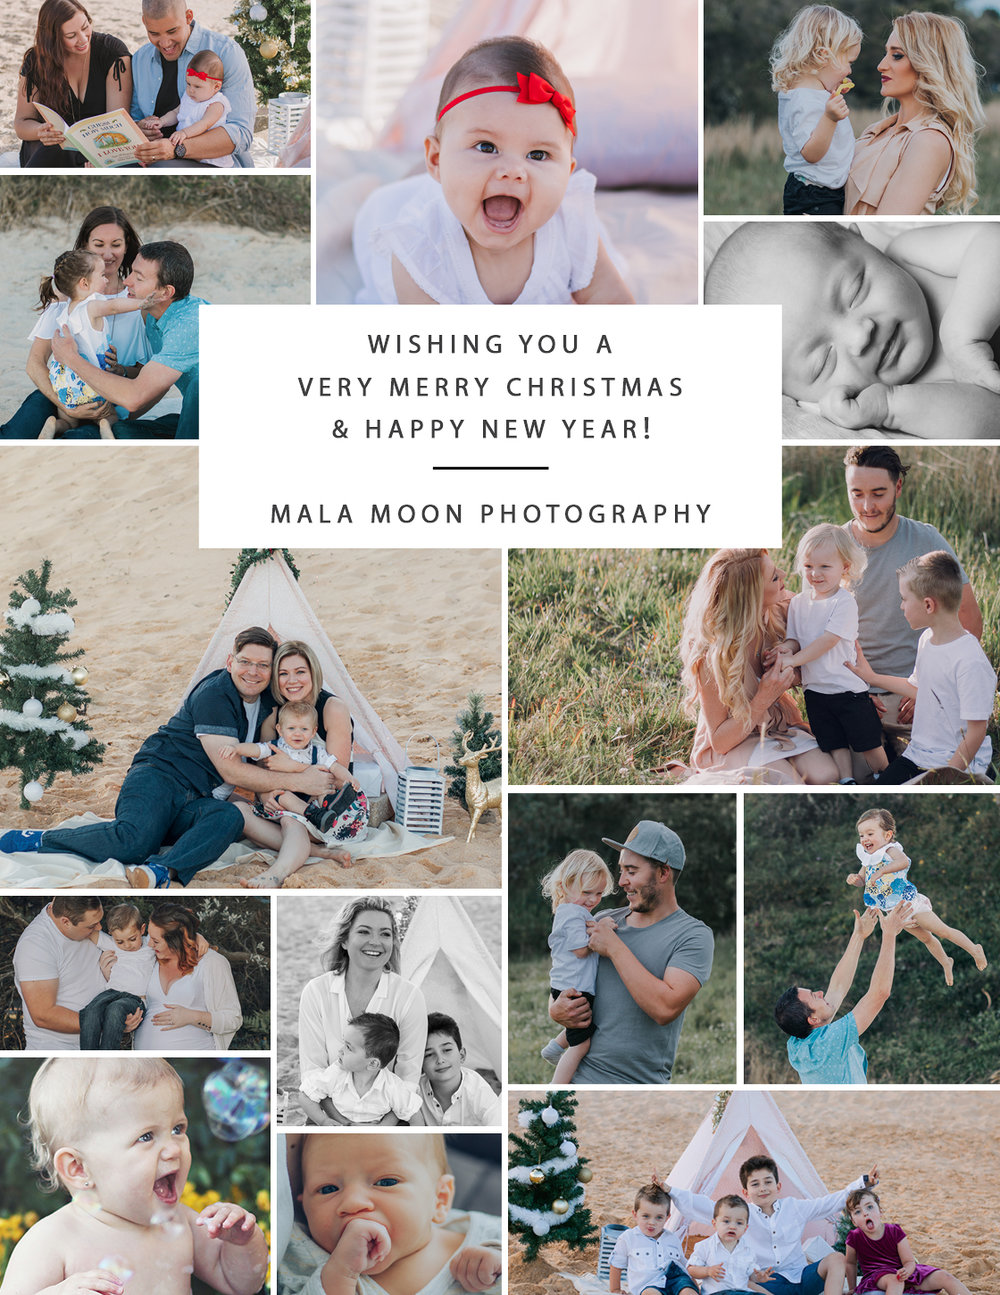 mala moon photography christmas card central coast